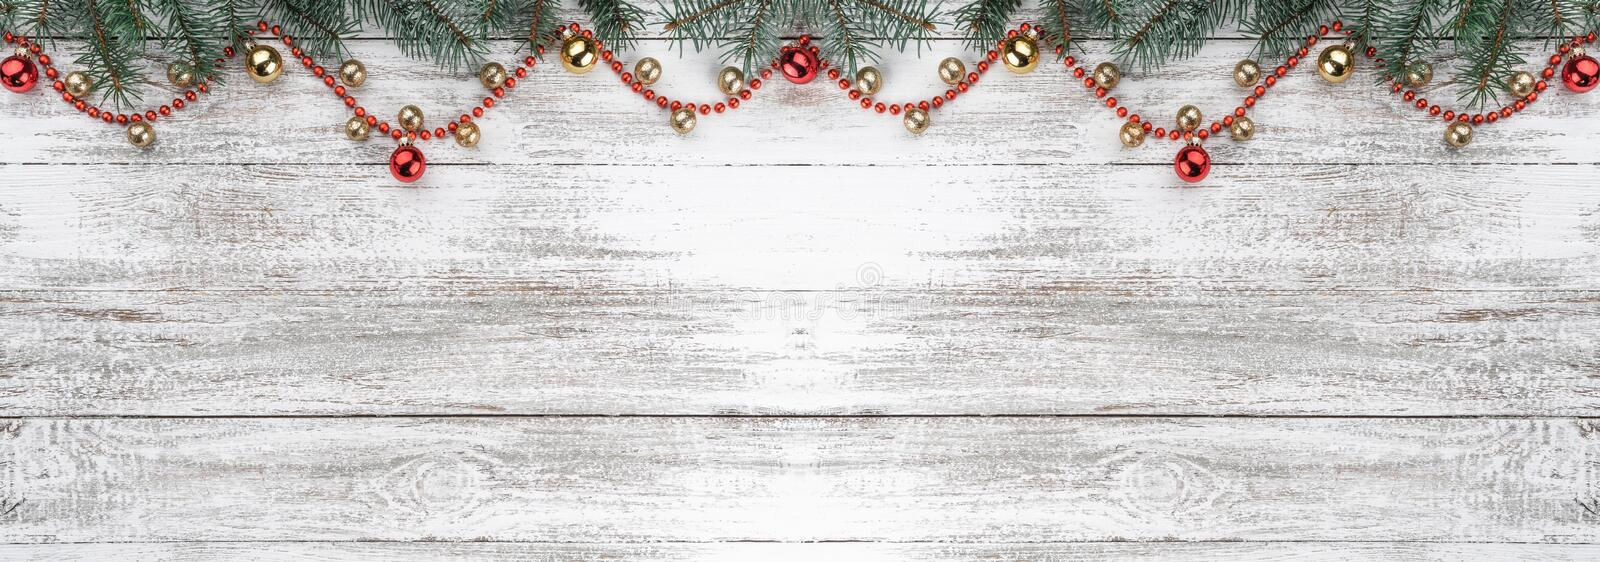 Old wooden Christmas background. Fir branches. Gold and red baubles. Red garlands. Xmas card. Top view. Space for your text. Horizontally card royalty free stock images